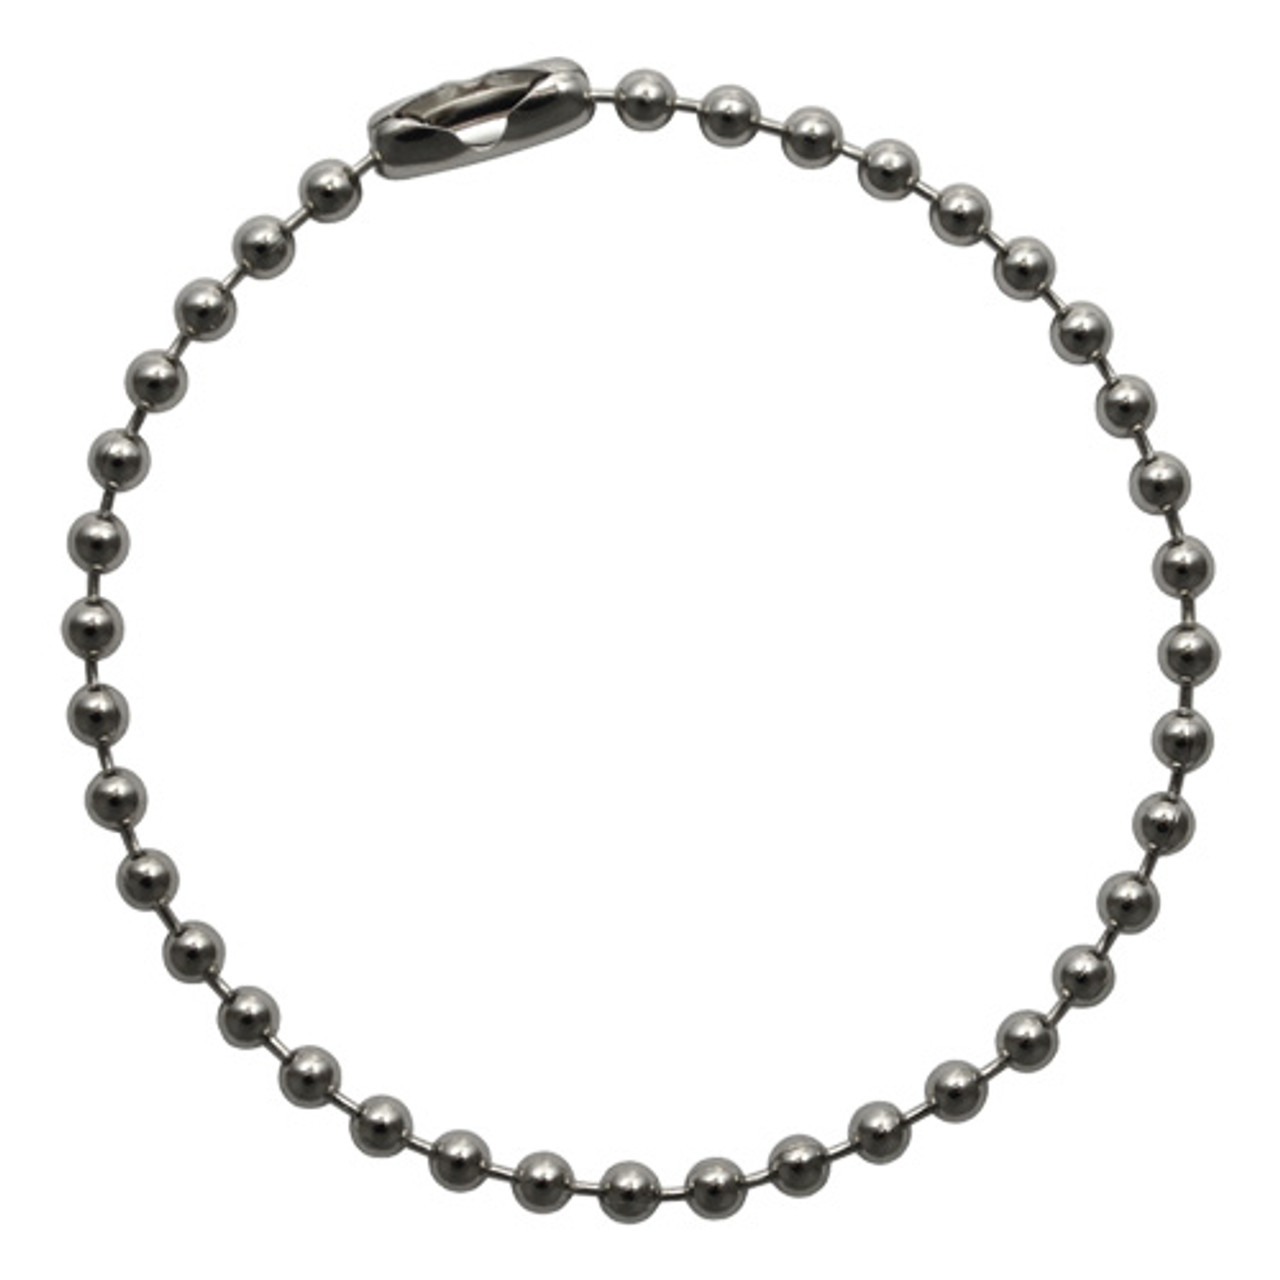 A single 4.5 inch long #3(2.4mm diameter) stainless steel ball chain key chain. Sold in bulk at low factory direct prices. Made in the USA since 1938.